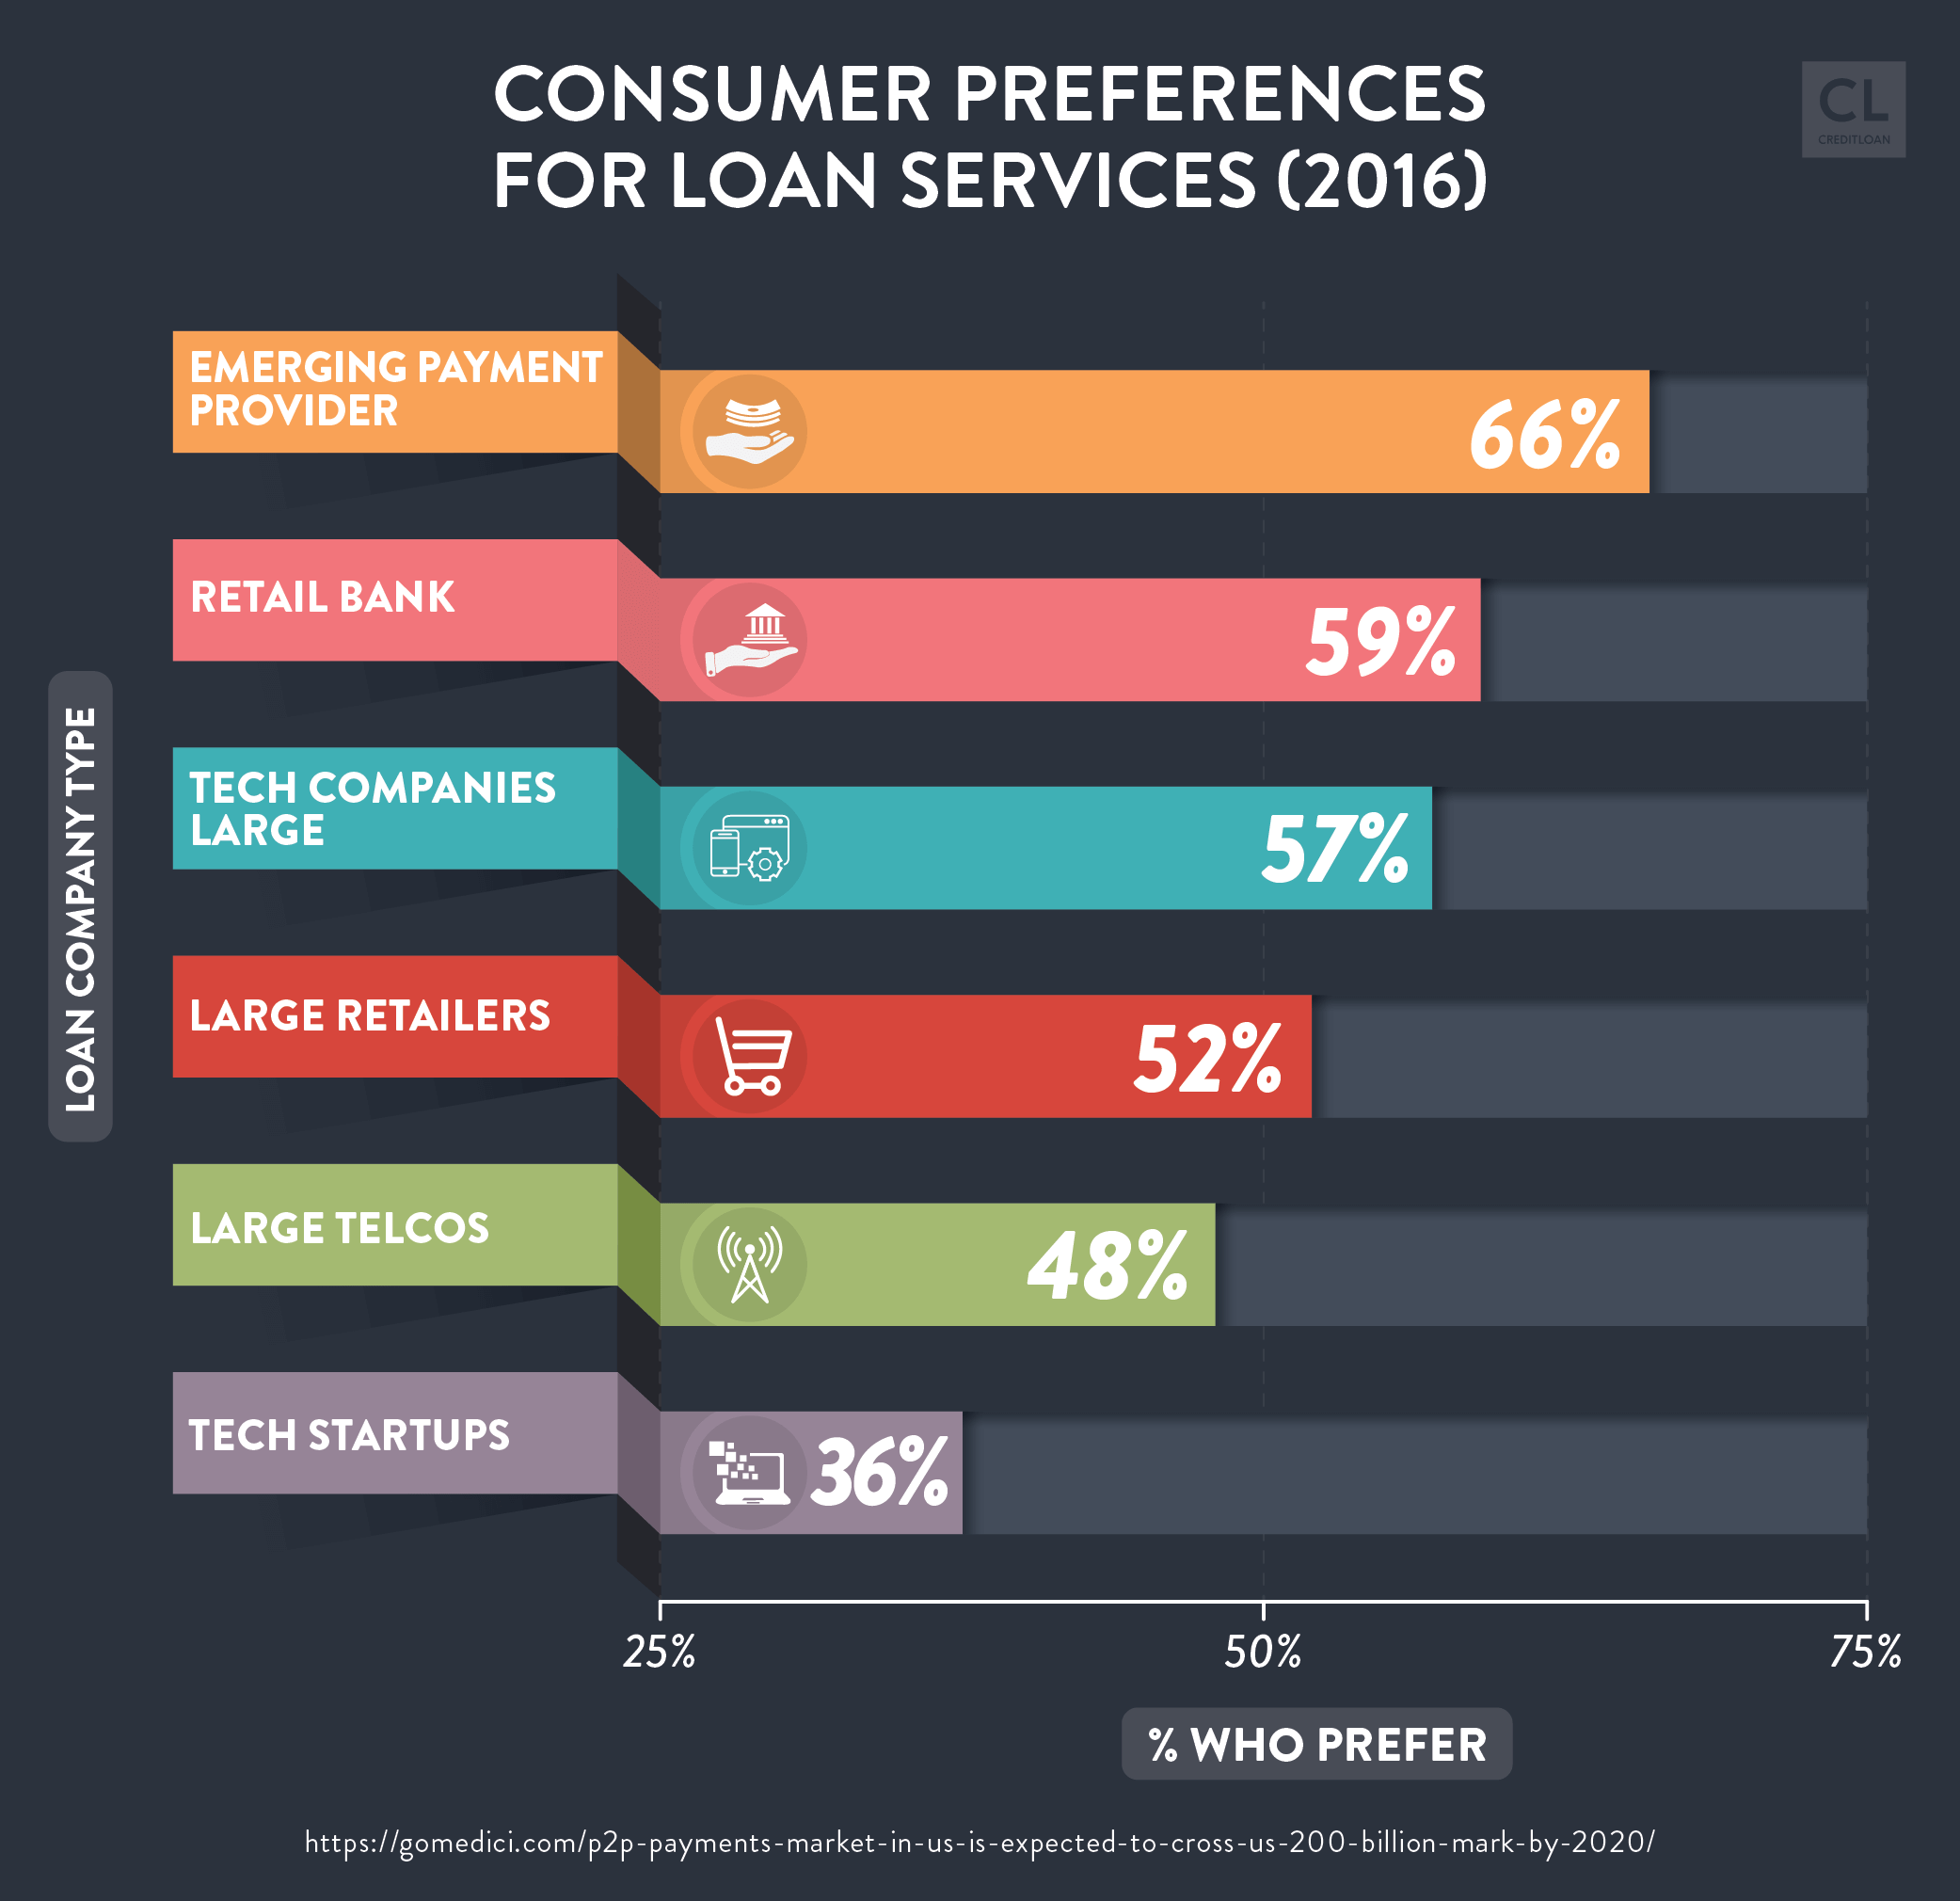 Data Showing Consumer Preferences for Loan Services